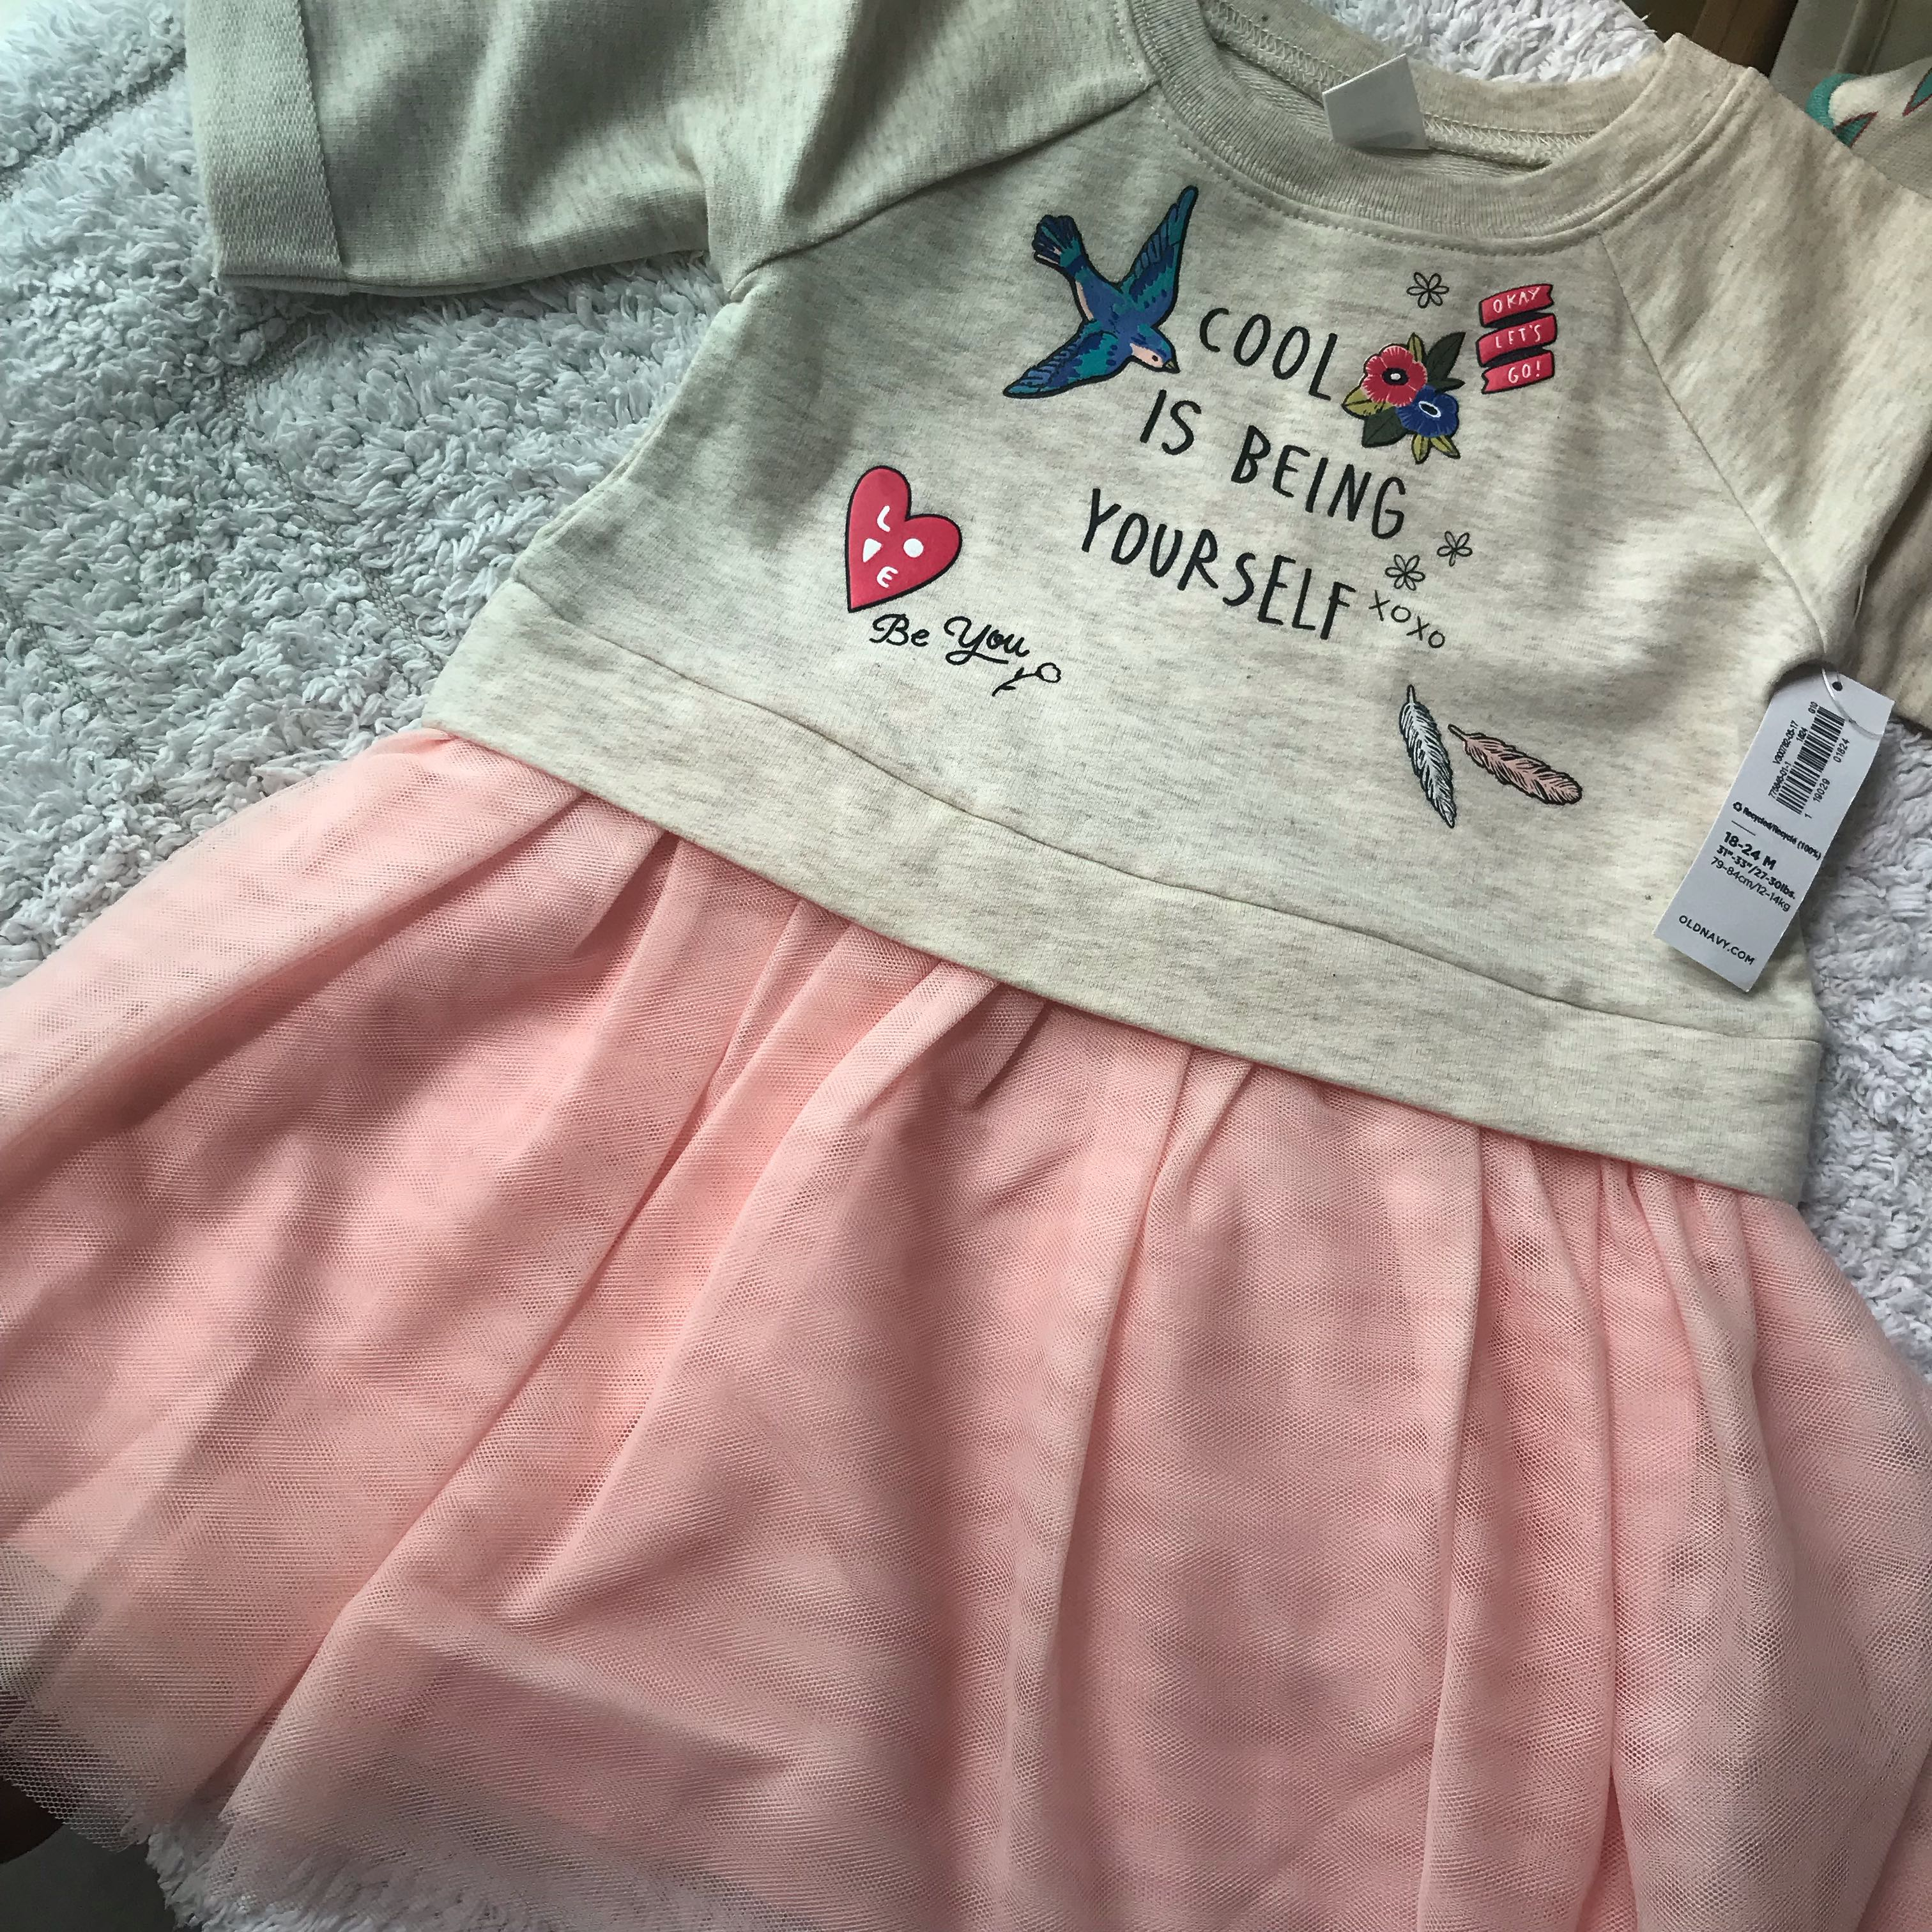 5b785b023bf4 BN Old Navy Baby Girl  Cool being yourself  Tutu Coral Dress 18 ...